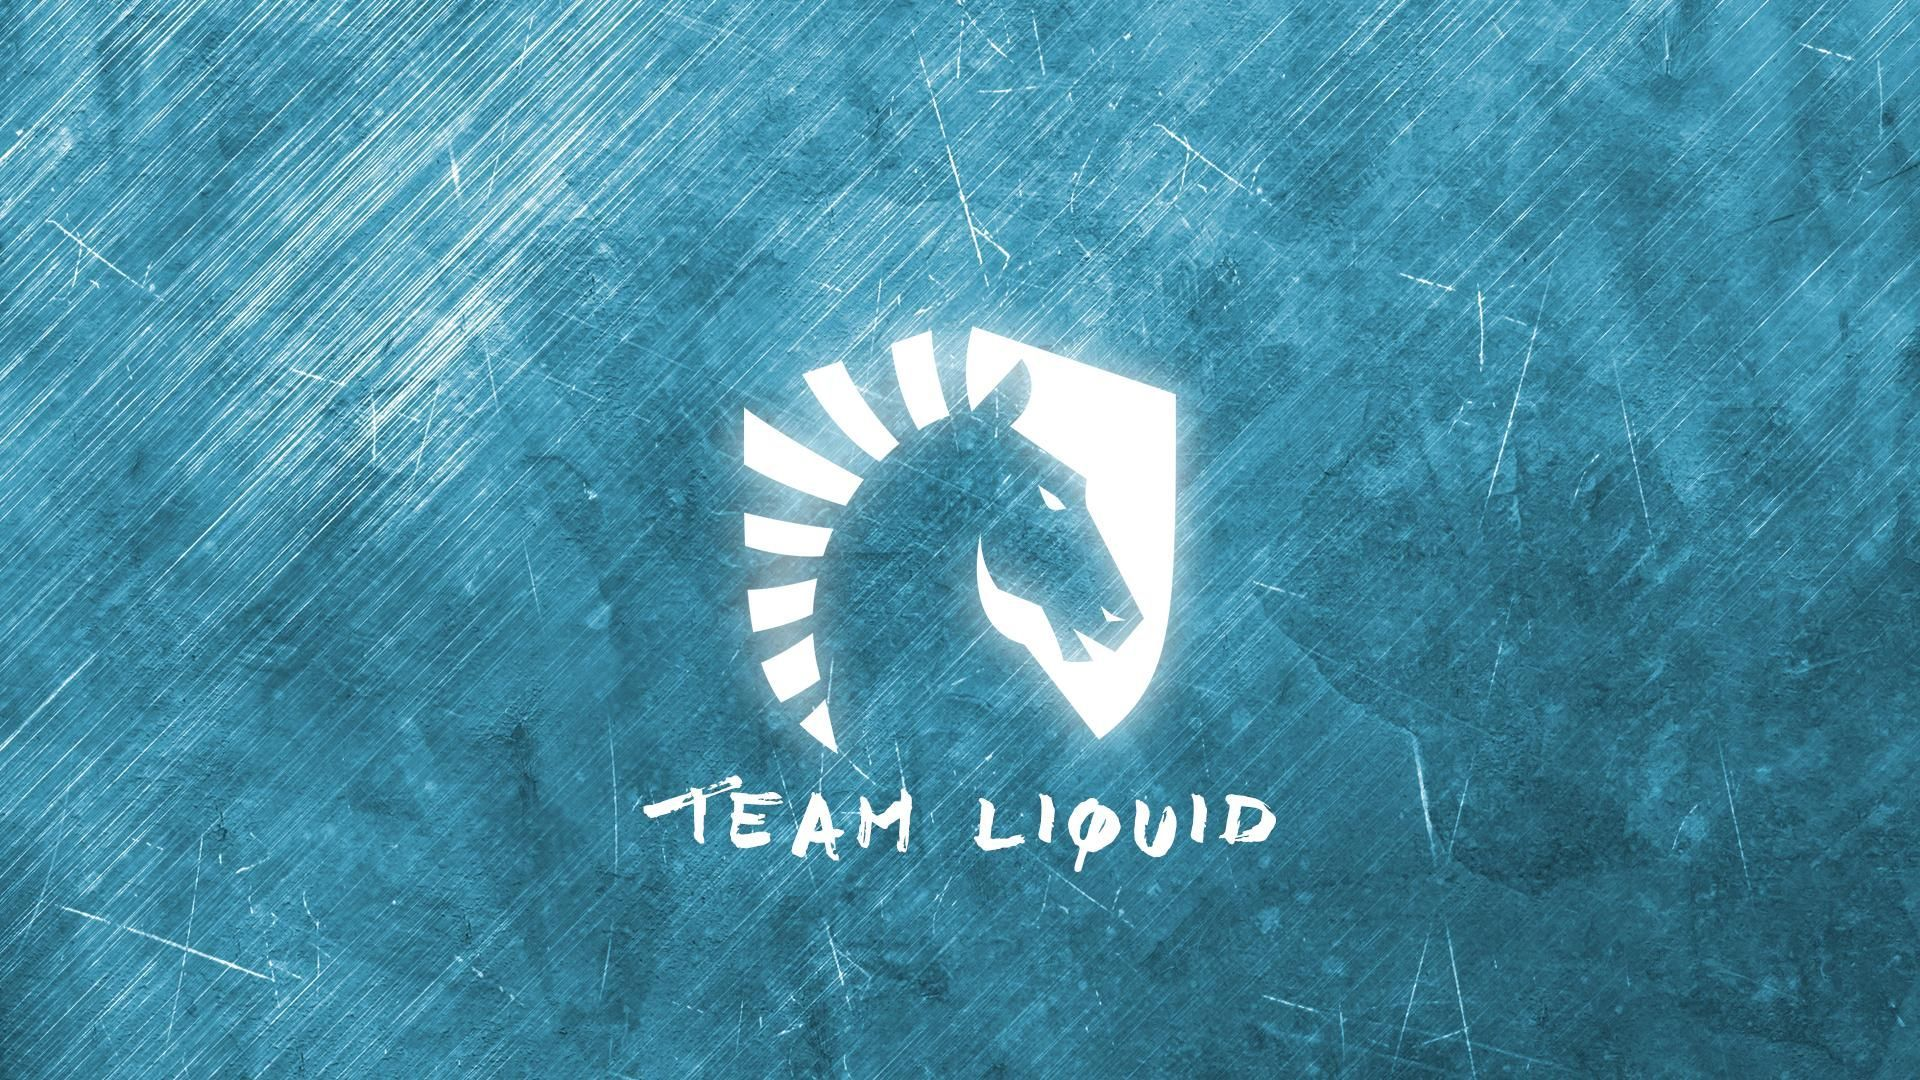 Don't miss the new team liquid